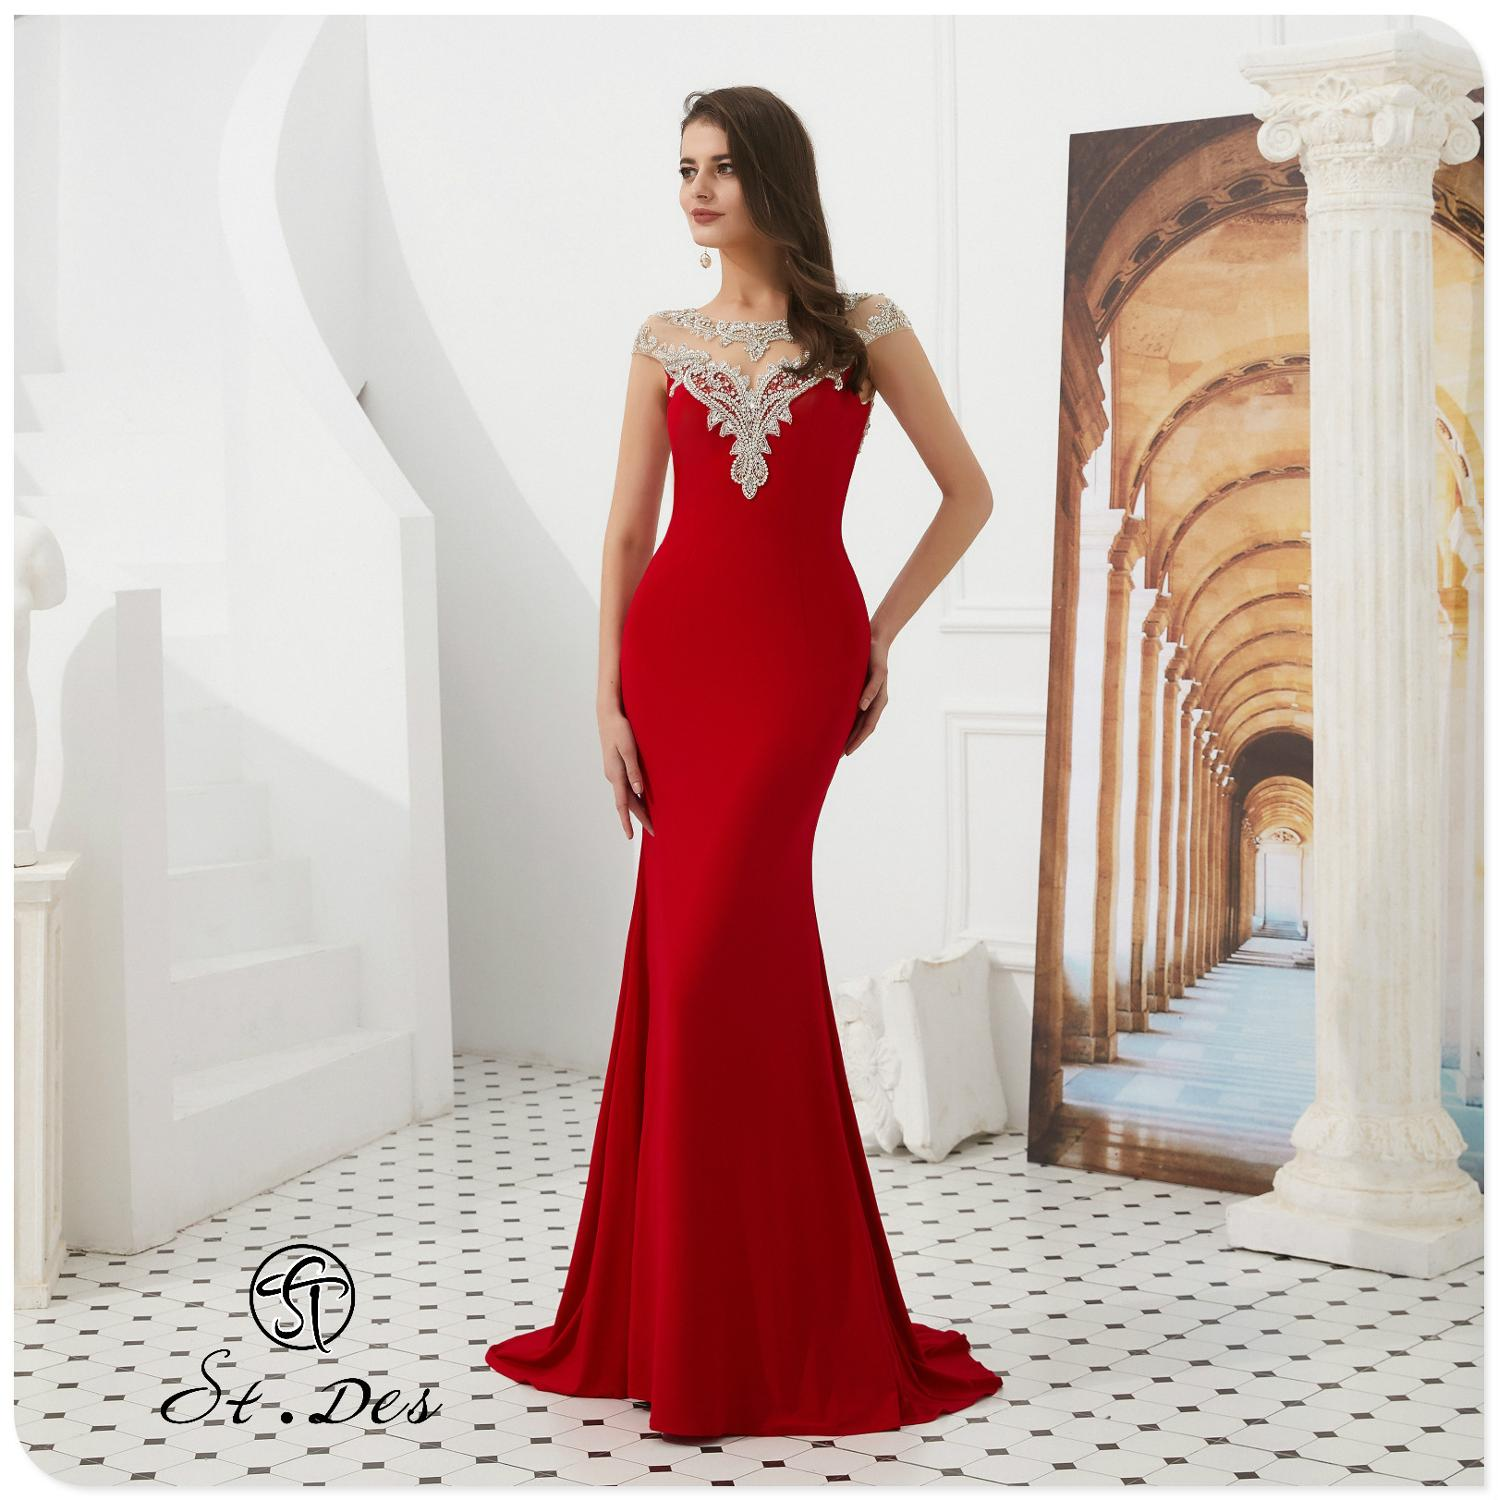 NEW 2020 St.Des Mermaid Russian Red Tassel Beading Sleeveless Designer Floor Length Evening Dress Party Dress